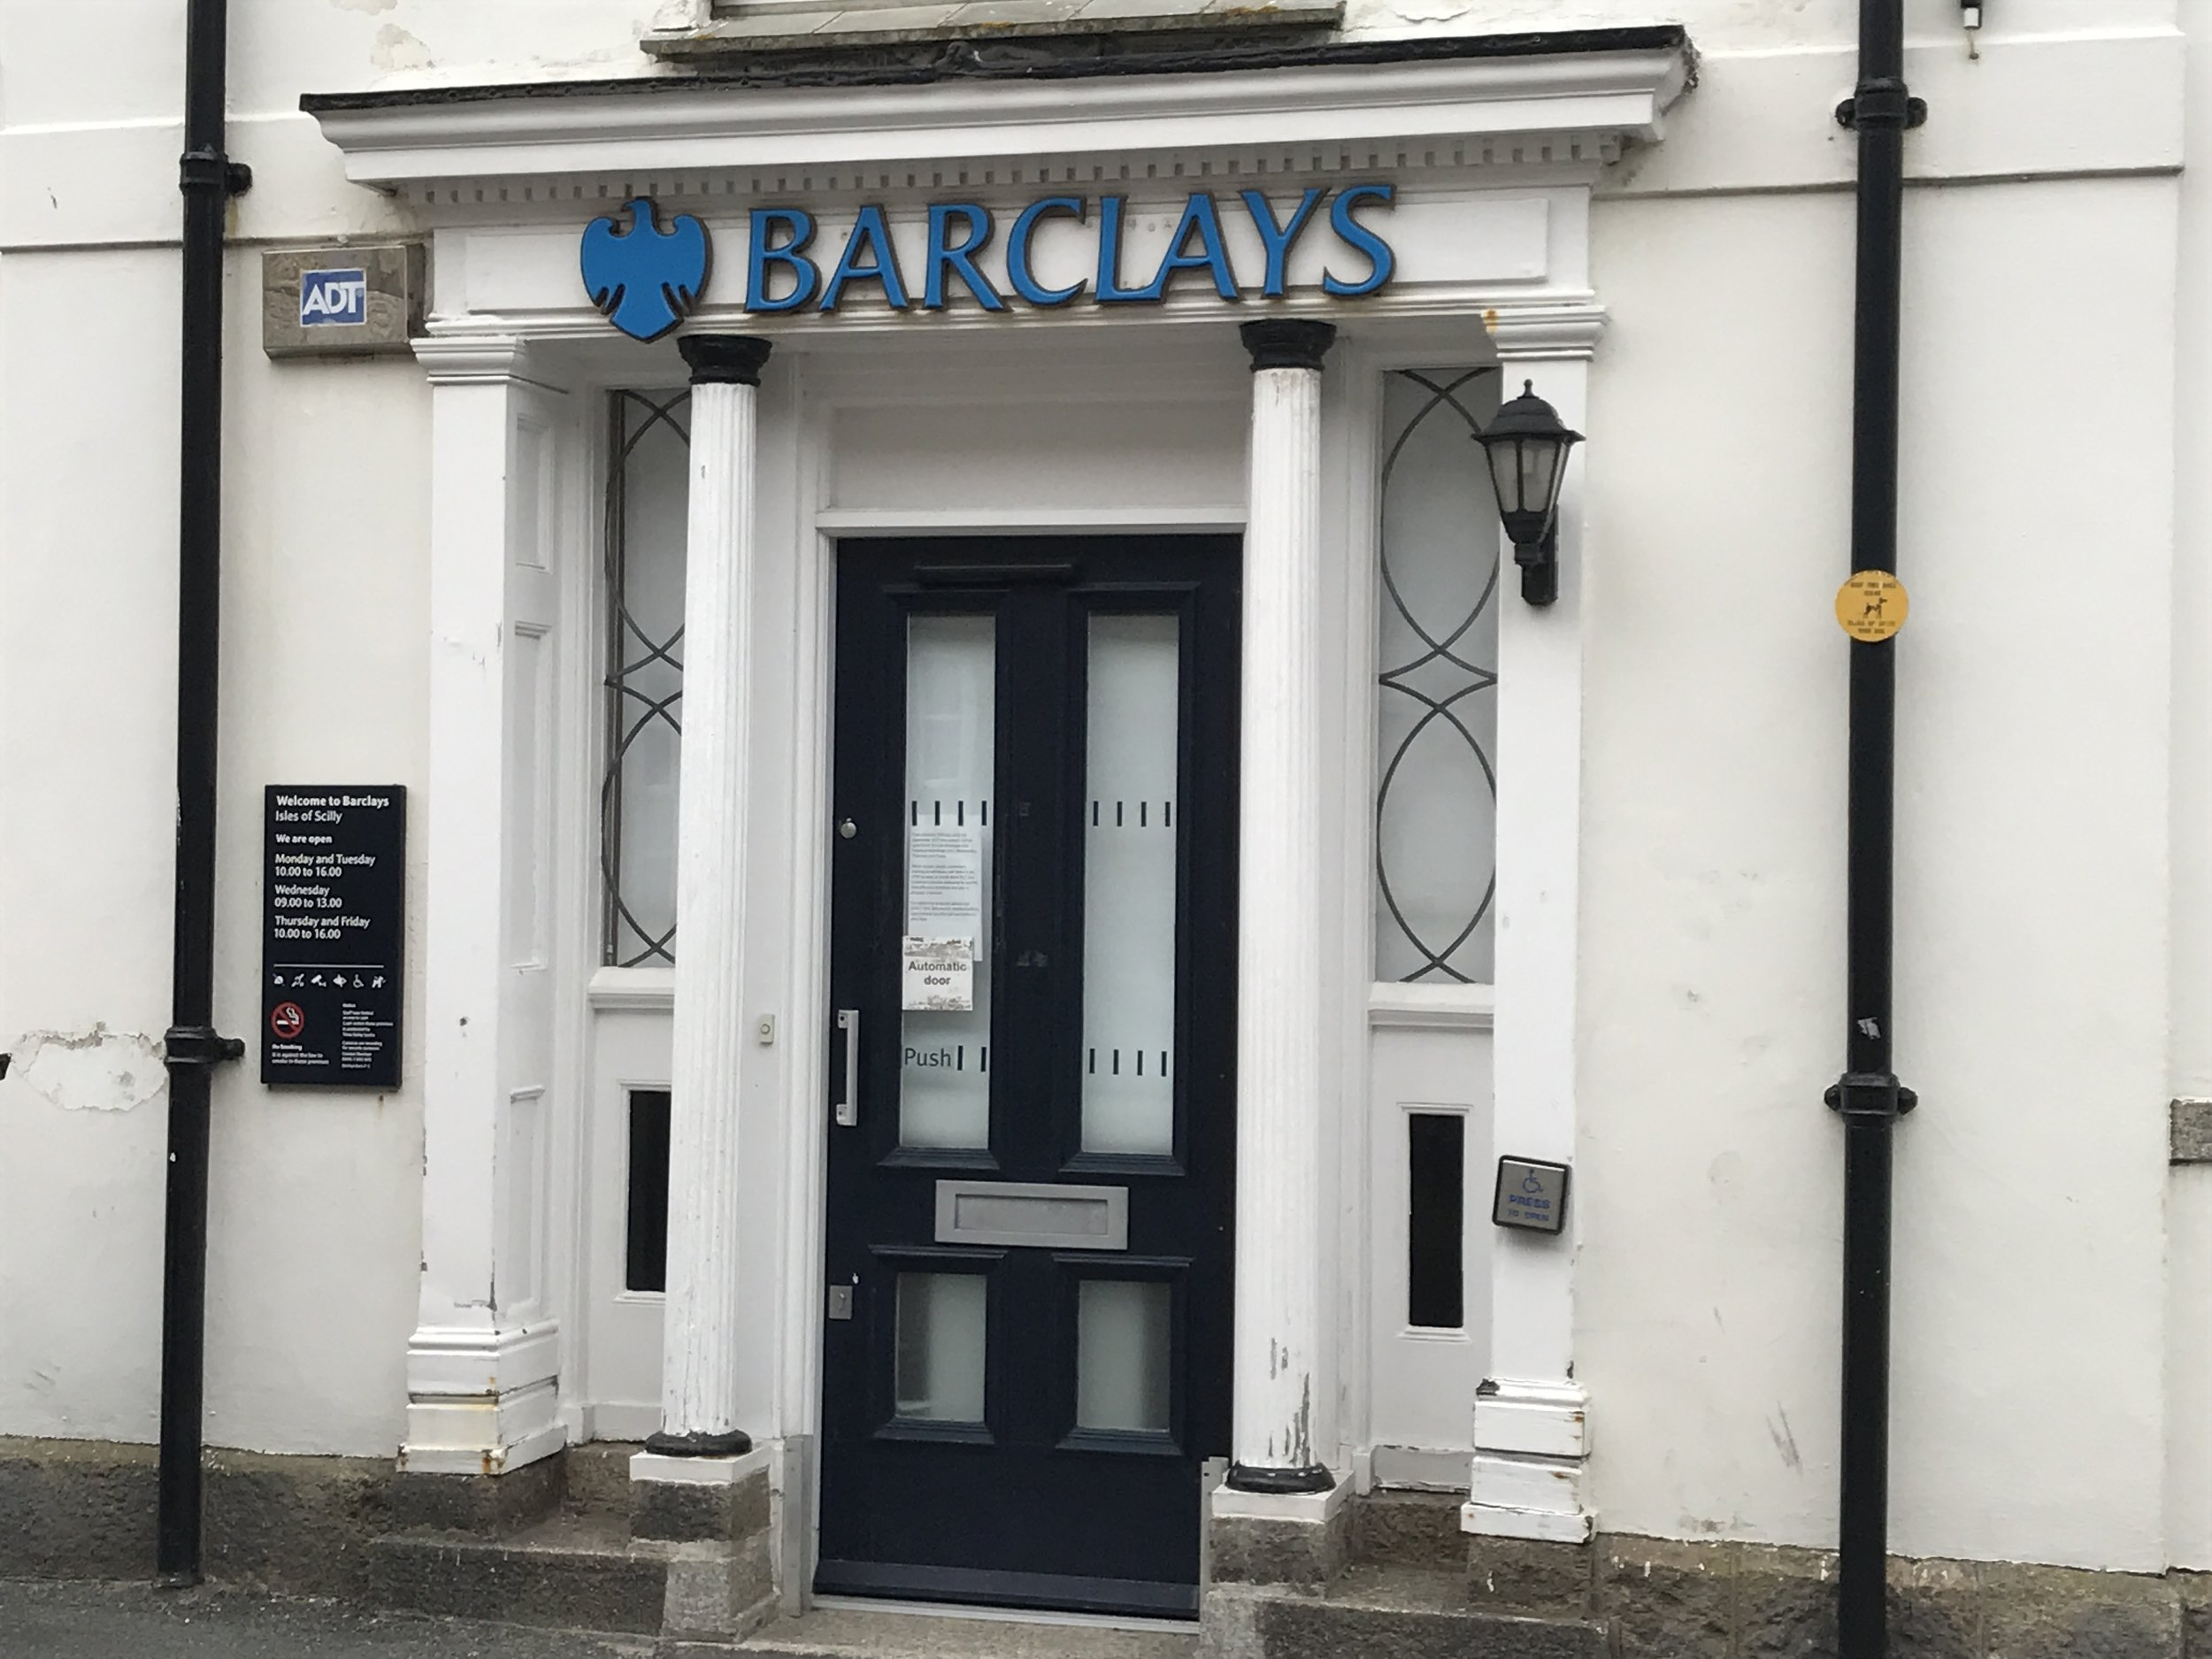 The local branch of Barclays Bank in Hugh Street on St Mary's.